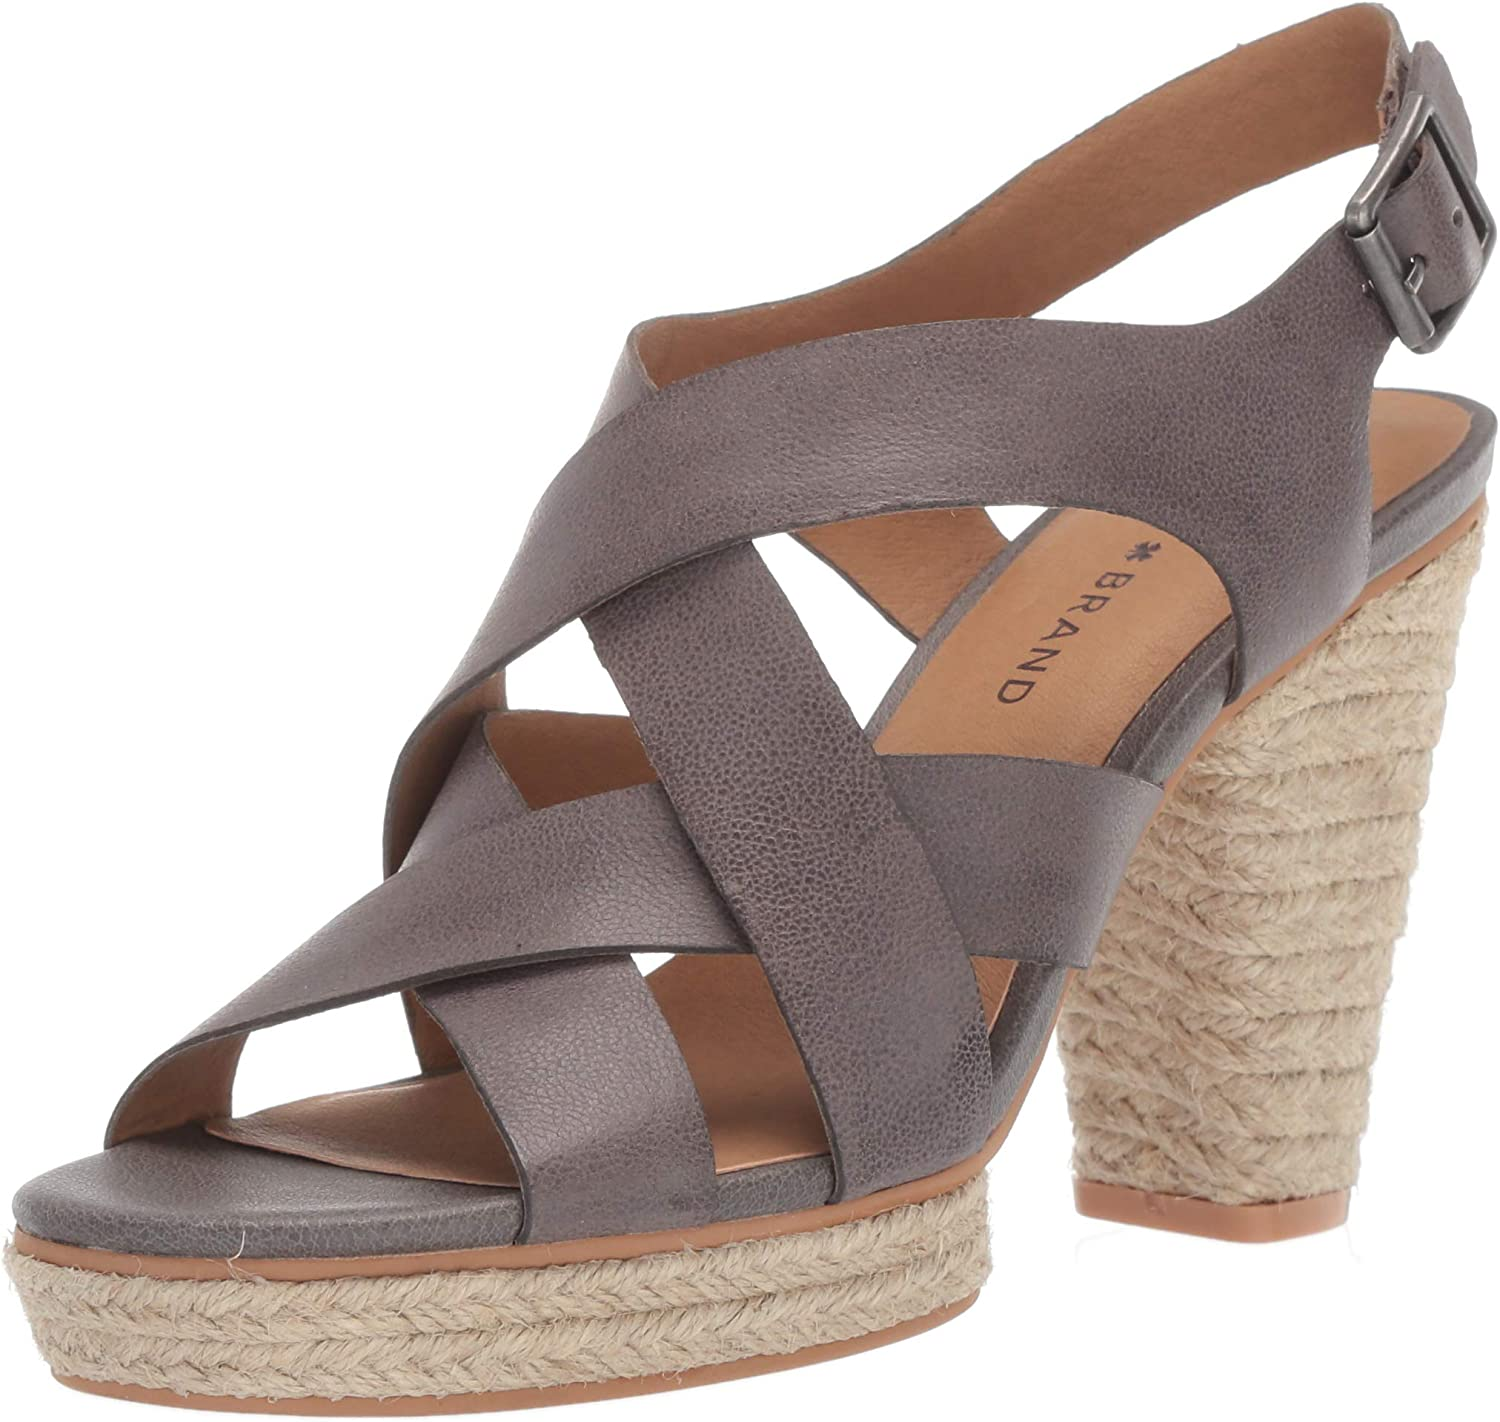 Lucky Brand Womens Cabino Leather Open Toe Strappy Heel Sandal